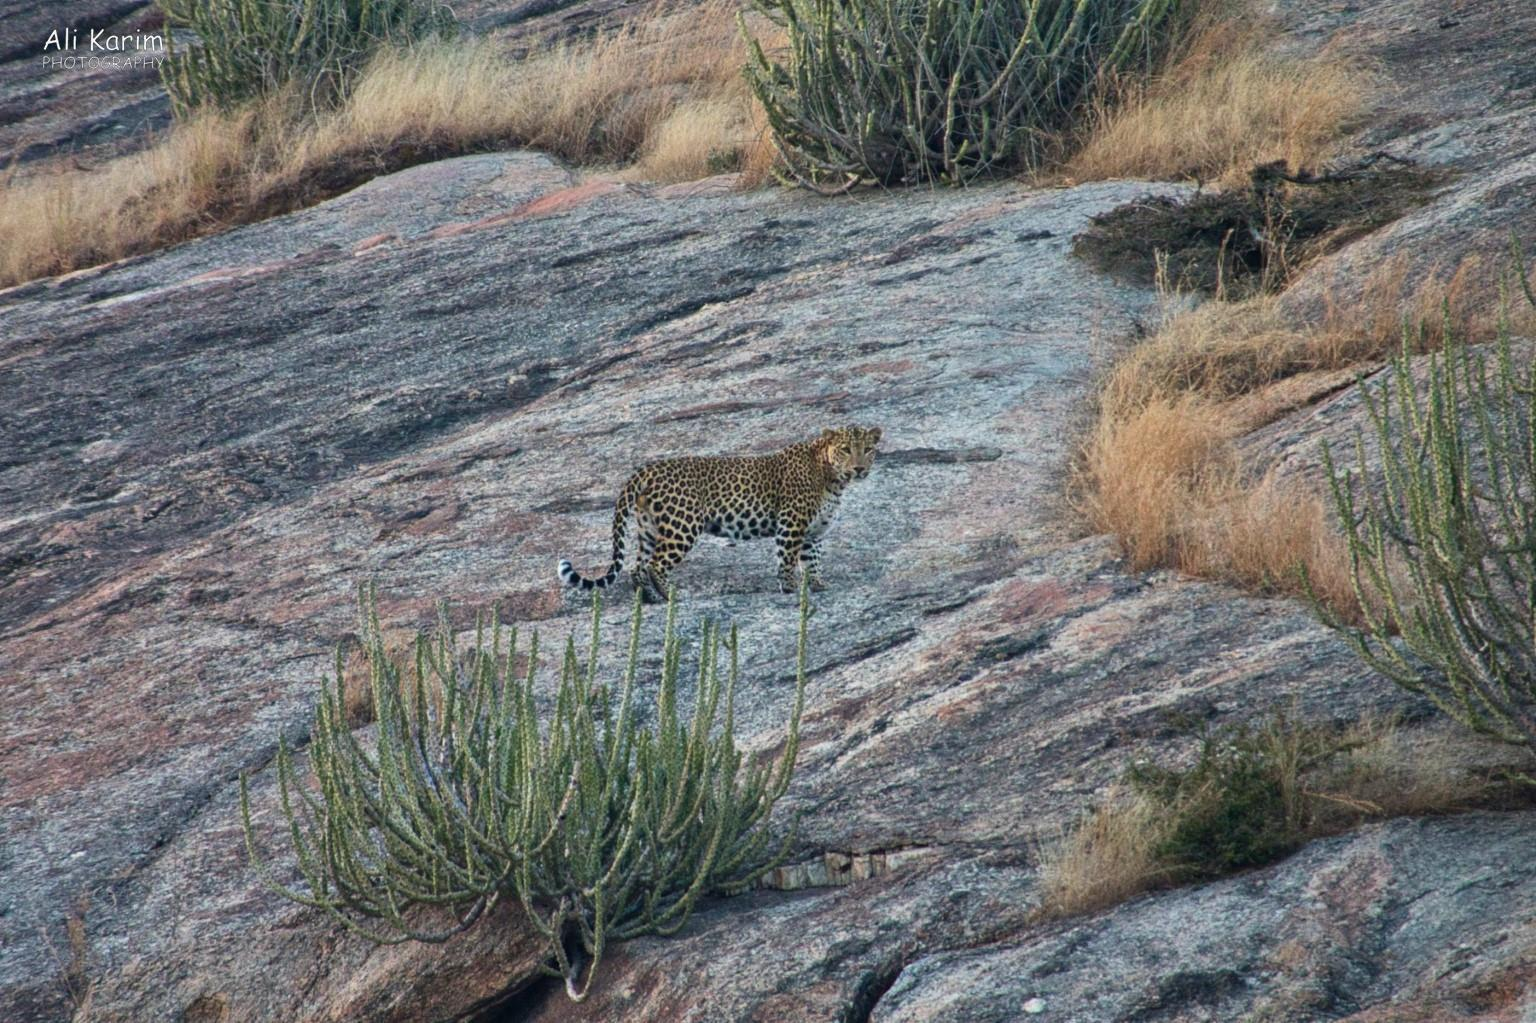 Leopards, Bera, Rajasthan and posed for us; beautiful